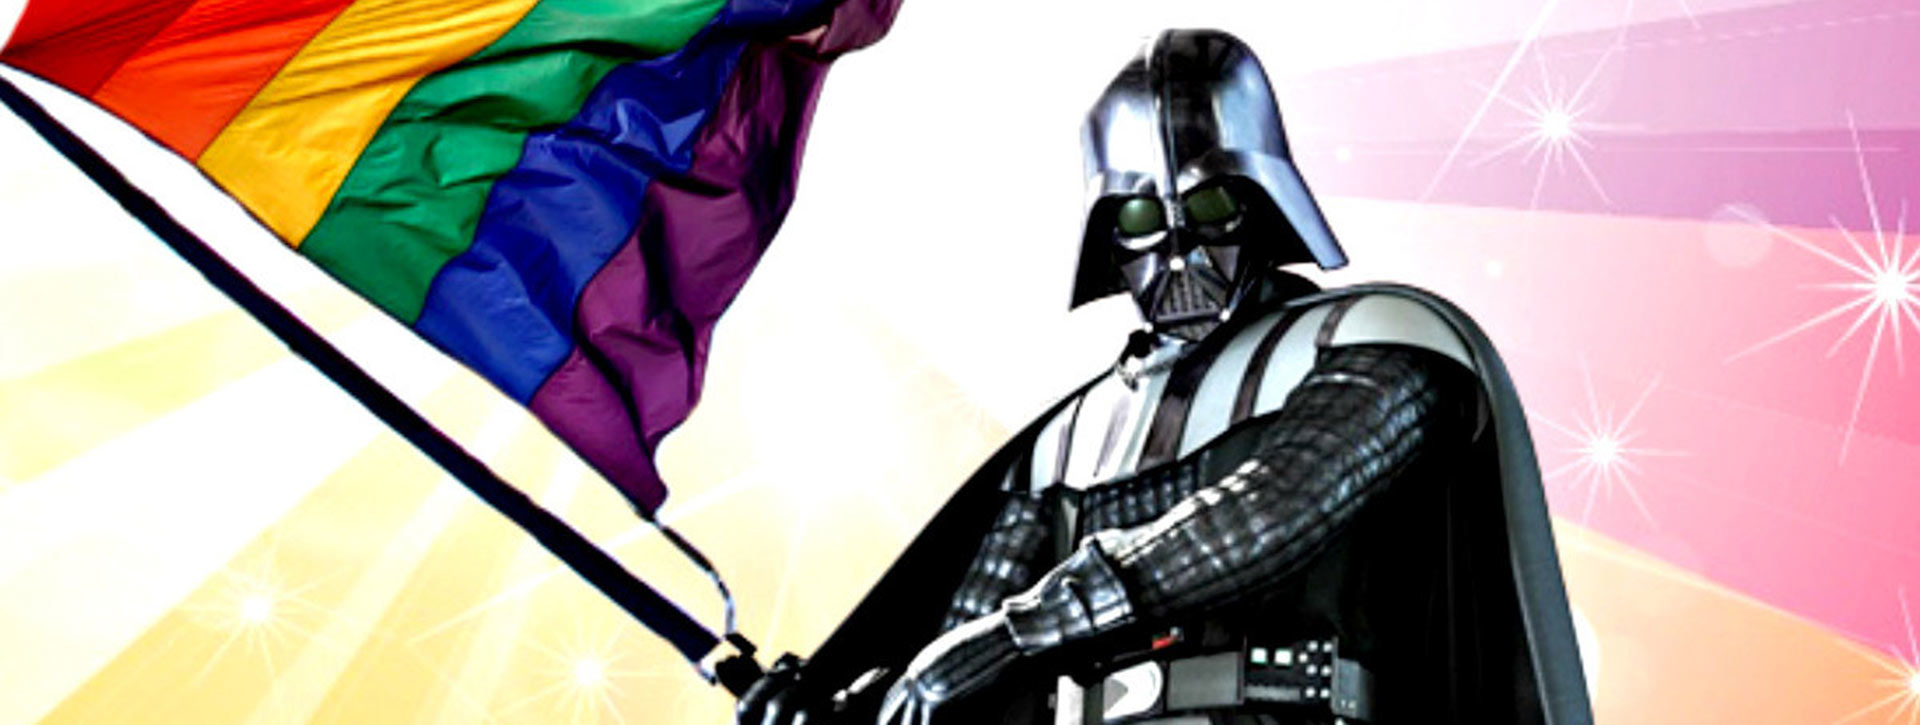 gay-star-wars-x1920